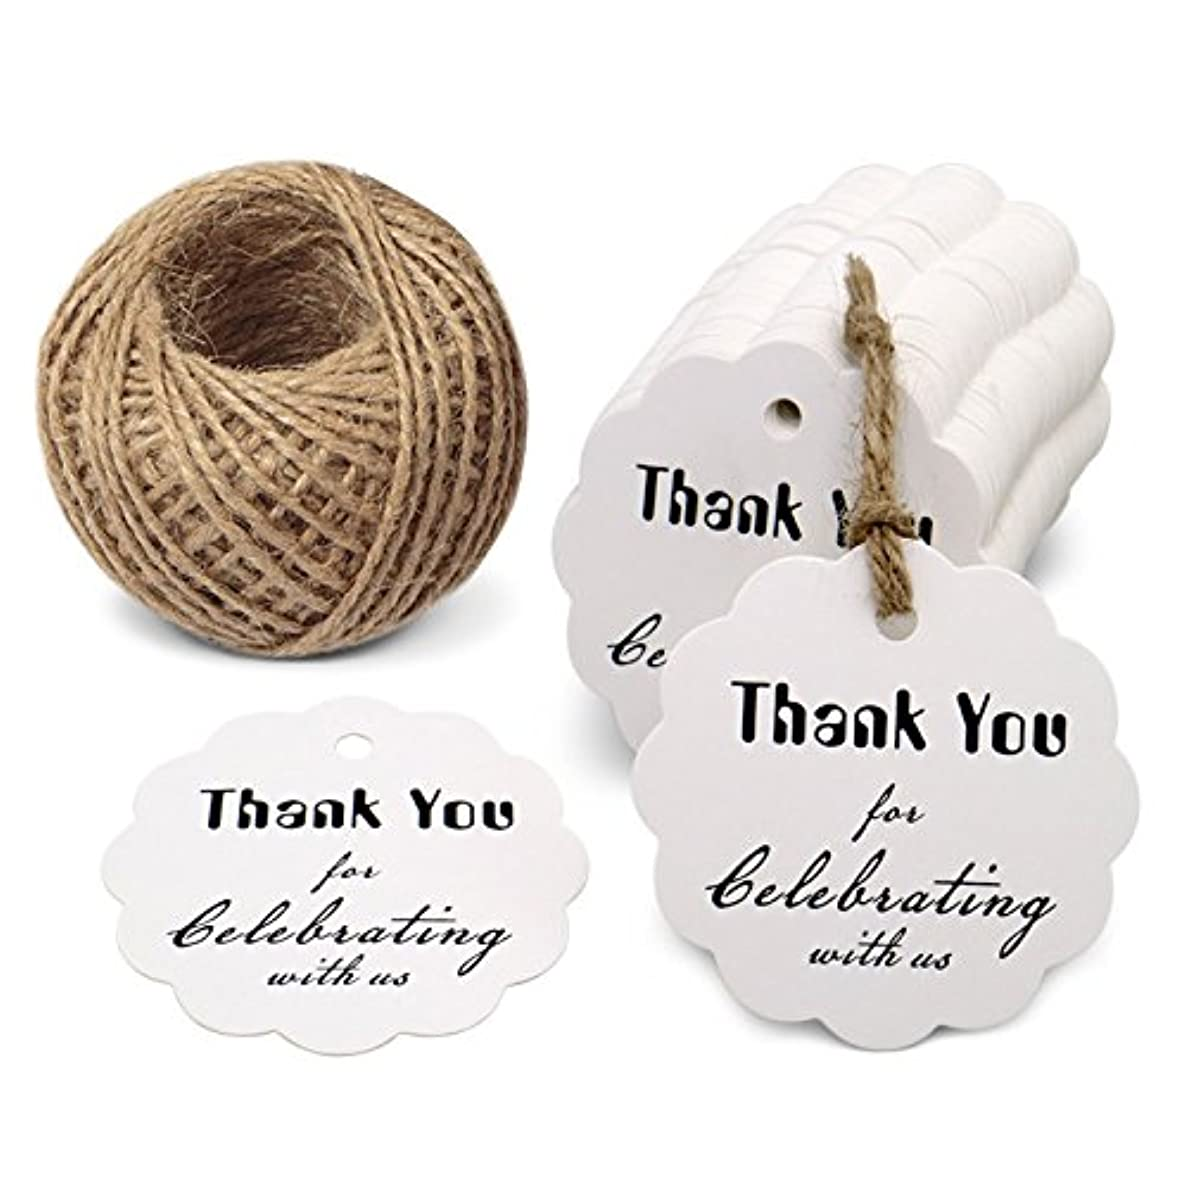 Paper Gift Tags,Thank You for Celebrating with Us,100 Pcs Kraft Tags for Wedding Party Favors,Gifts with 100 Feet Natural Jute Twine (White Flower)